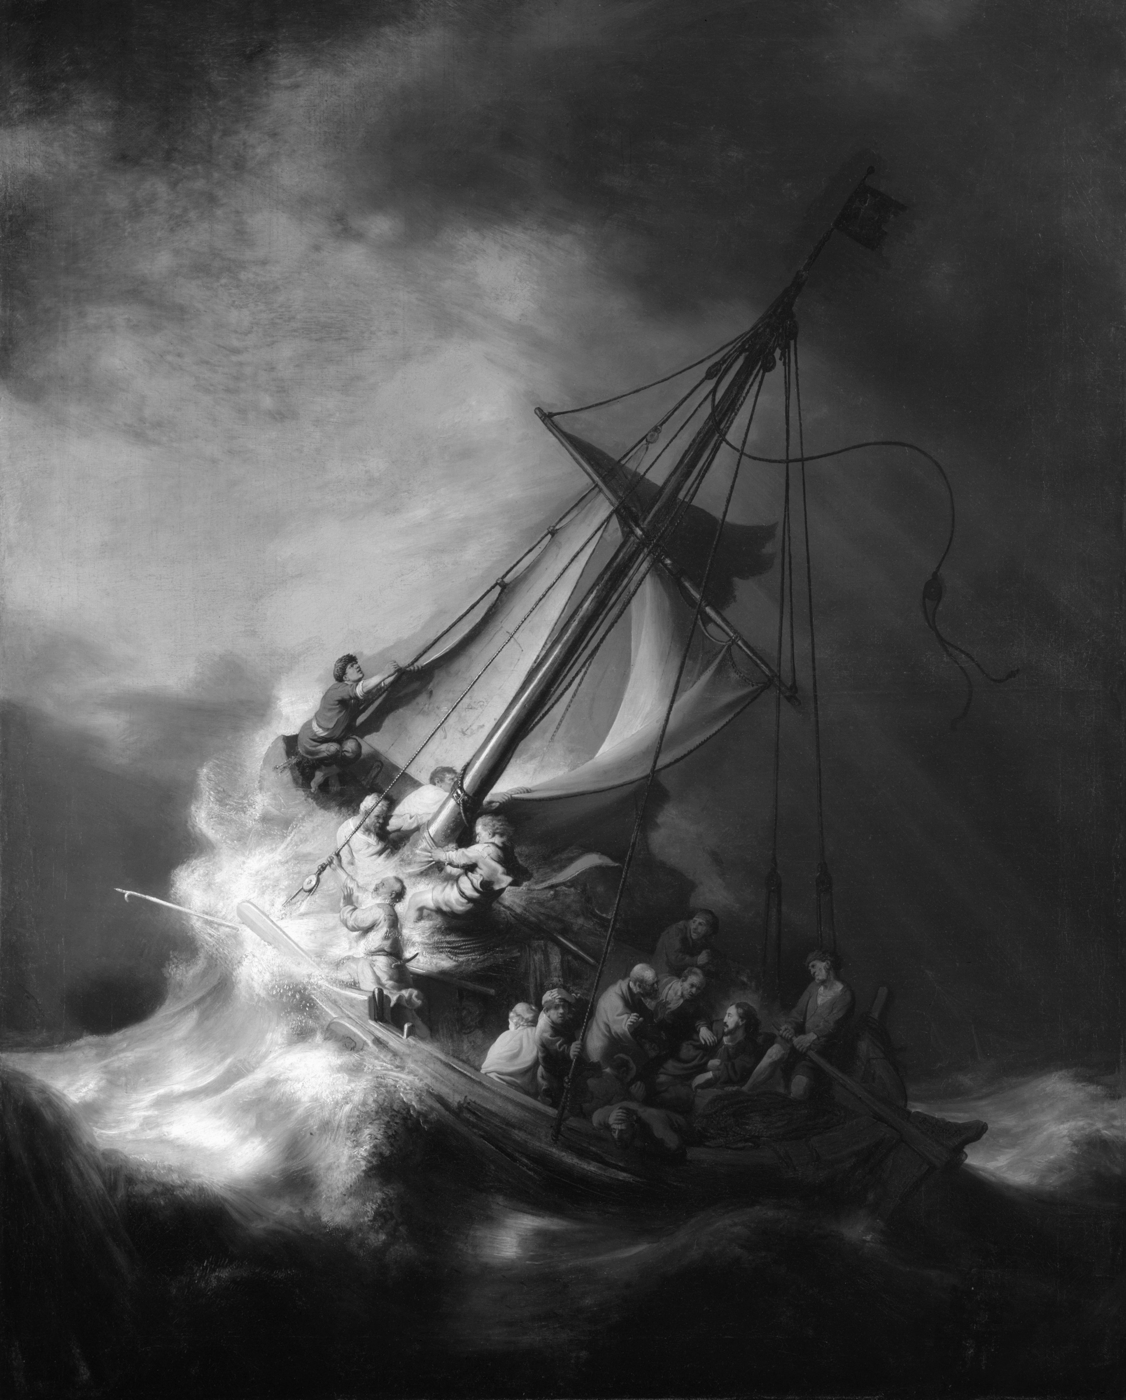 content/images/2.4/Rembrandt_Christ_in_the_Storm_on_the_Lake_of_Galilee_bw.jpg